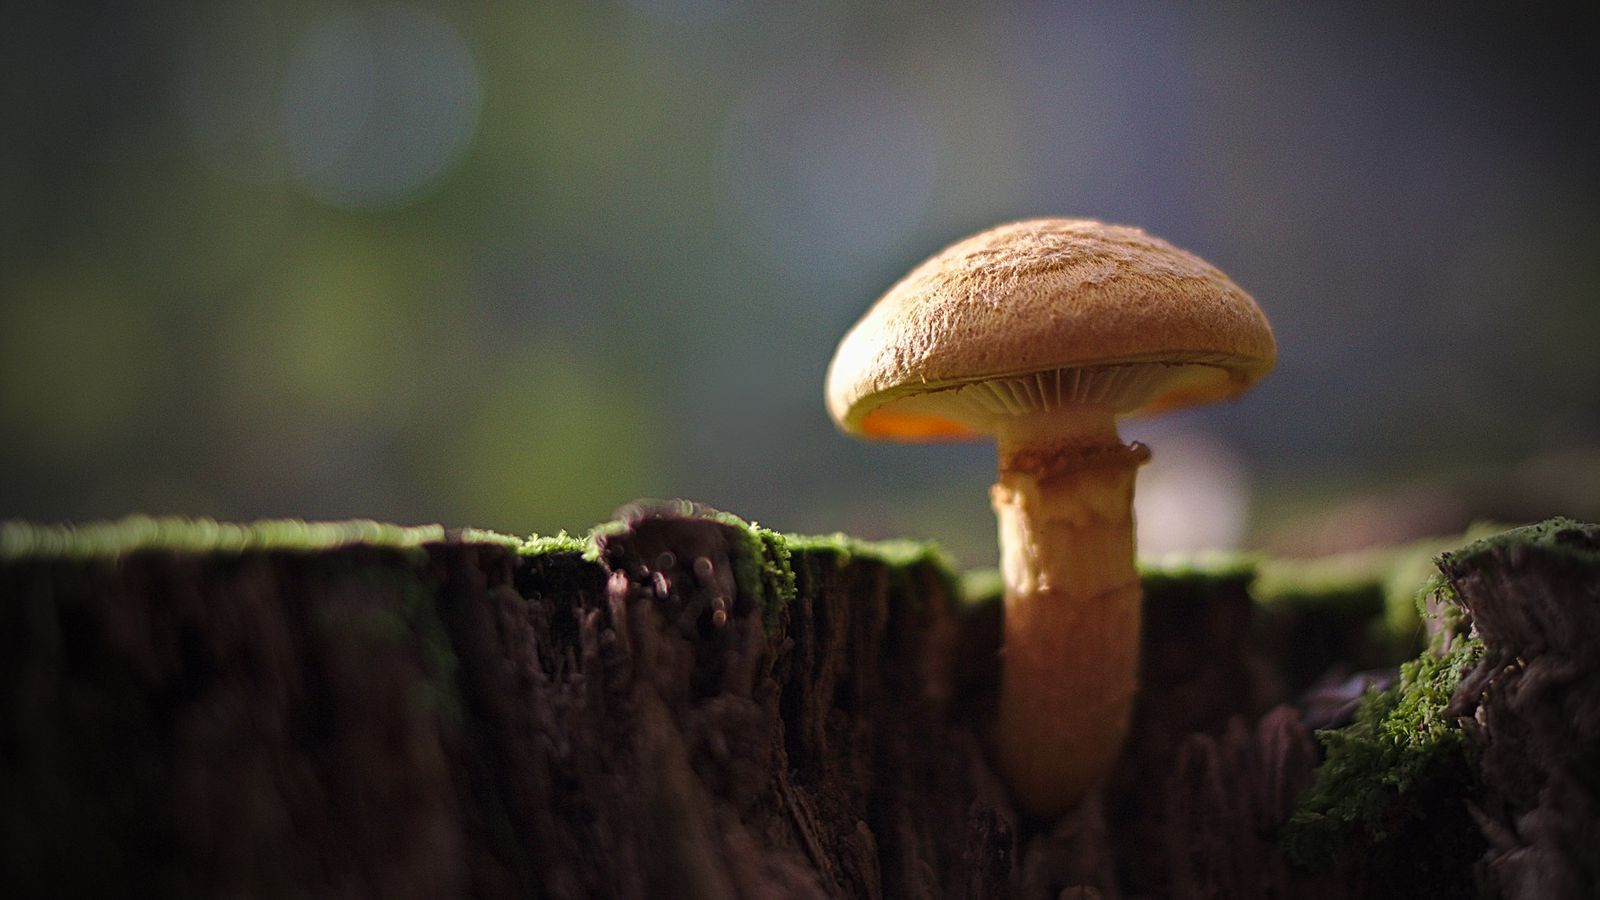 A 'potentially deadly' mushroom-identifying app highlights the dangers of bad AI